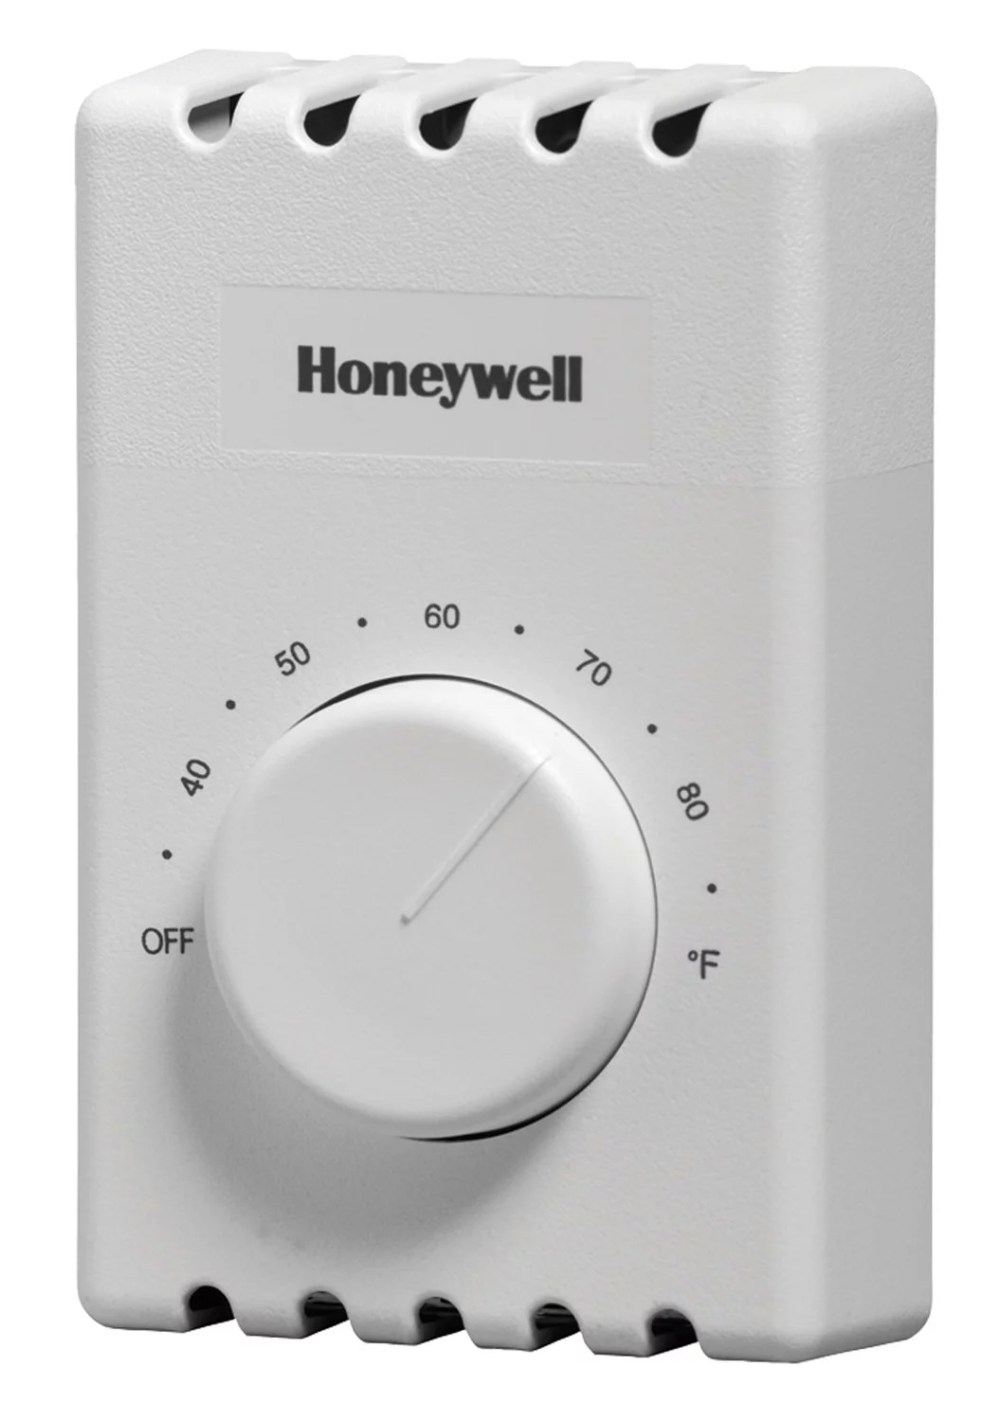 medium resolution of honeywell thermostats manual electric baseboard thermostat whites ct410b walmart com